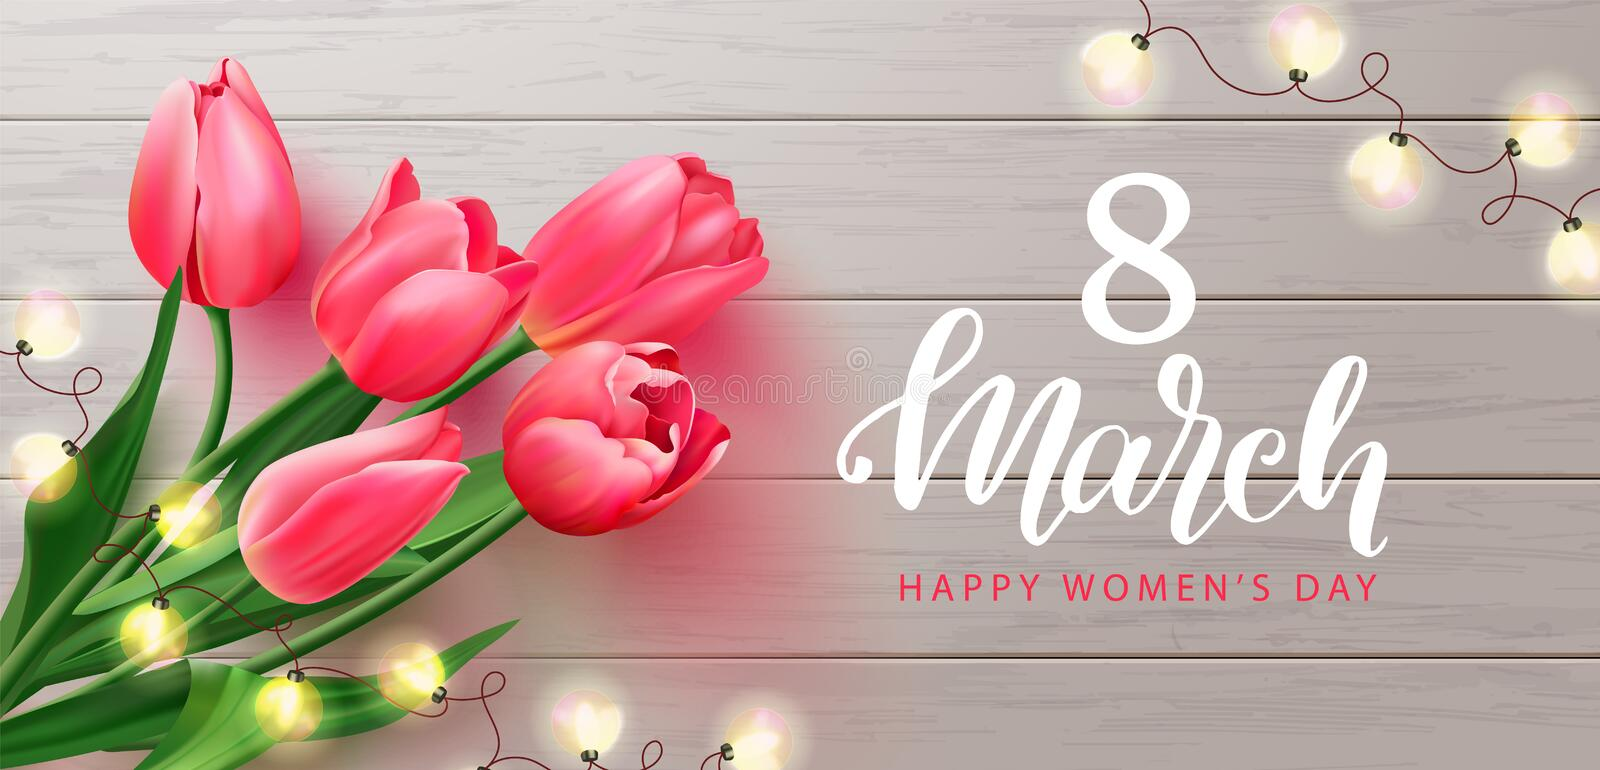 8 March Happy Women s Day banner. Beautiful Background with tulips and garland on wooden texture. Vector illustration vector illustration